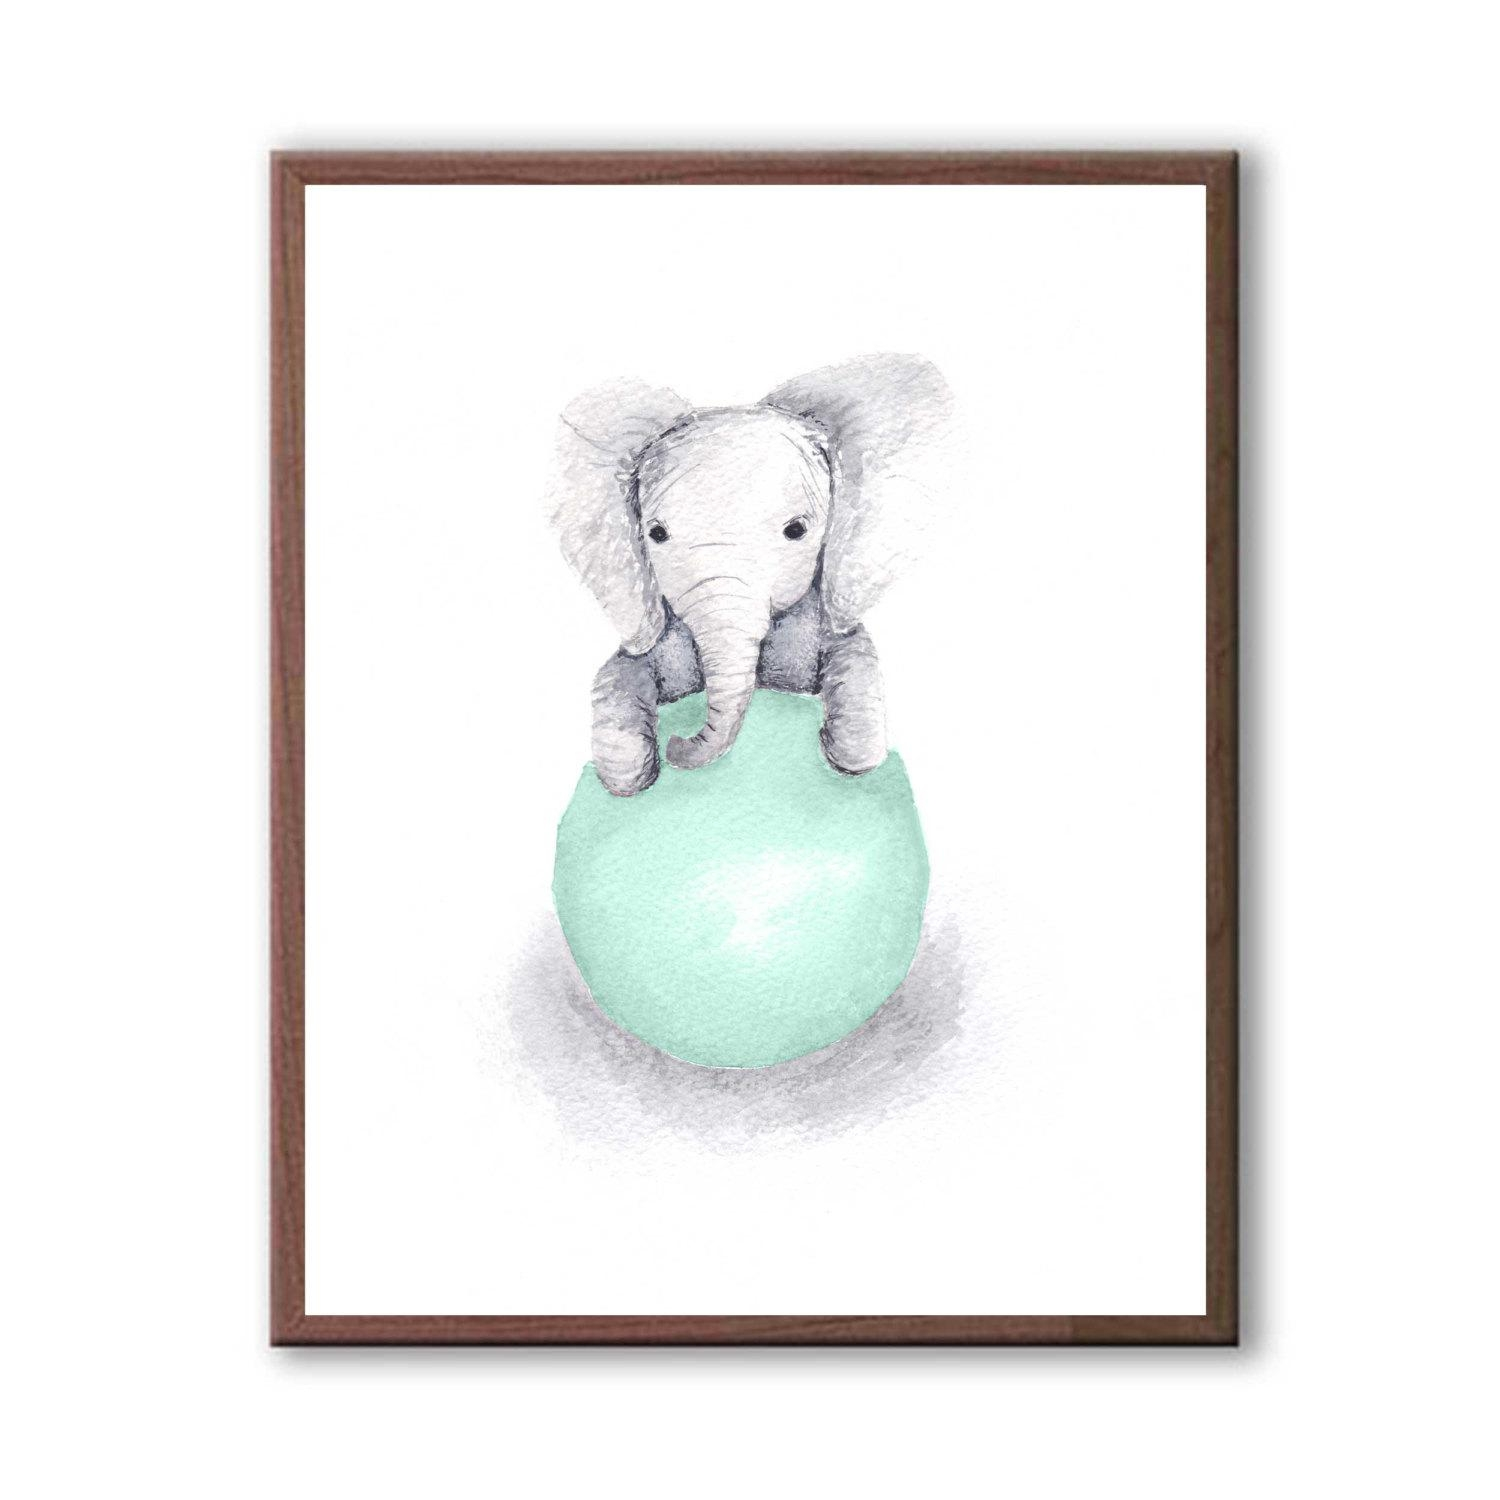 Elephant Wall Decor Baby Decor Art For Children Kids Room With Regard To Etsy Childrens Wall Art (Image 9 of 20)